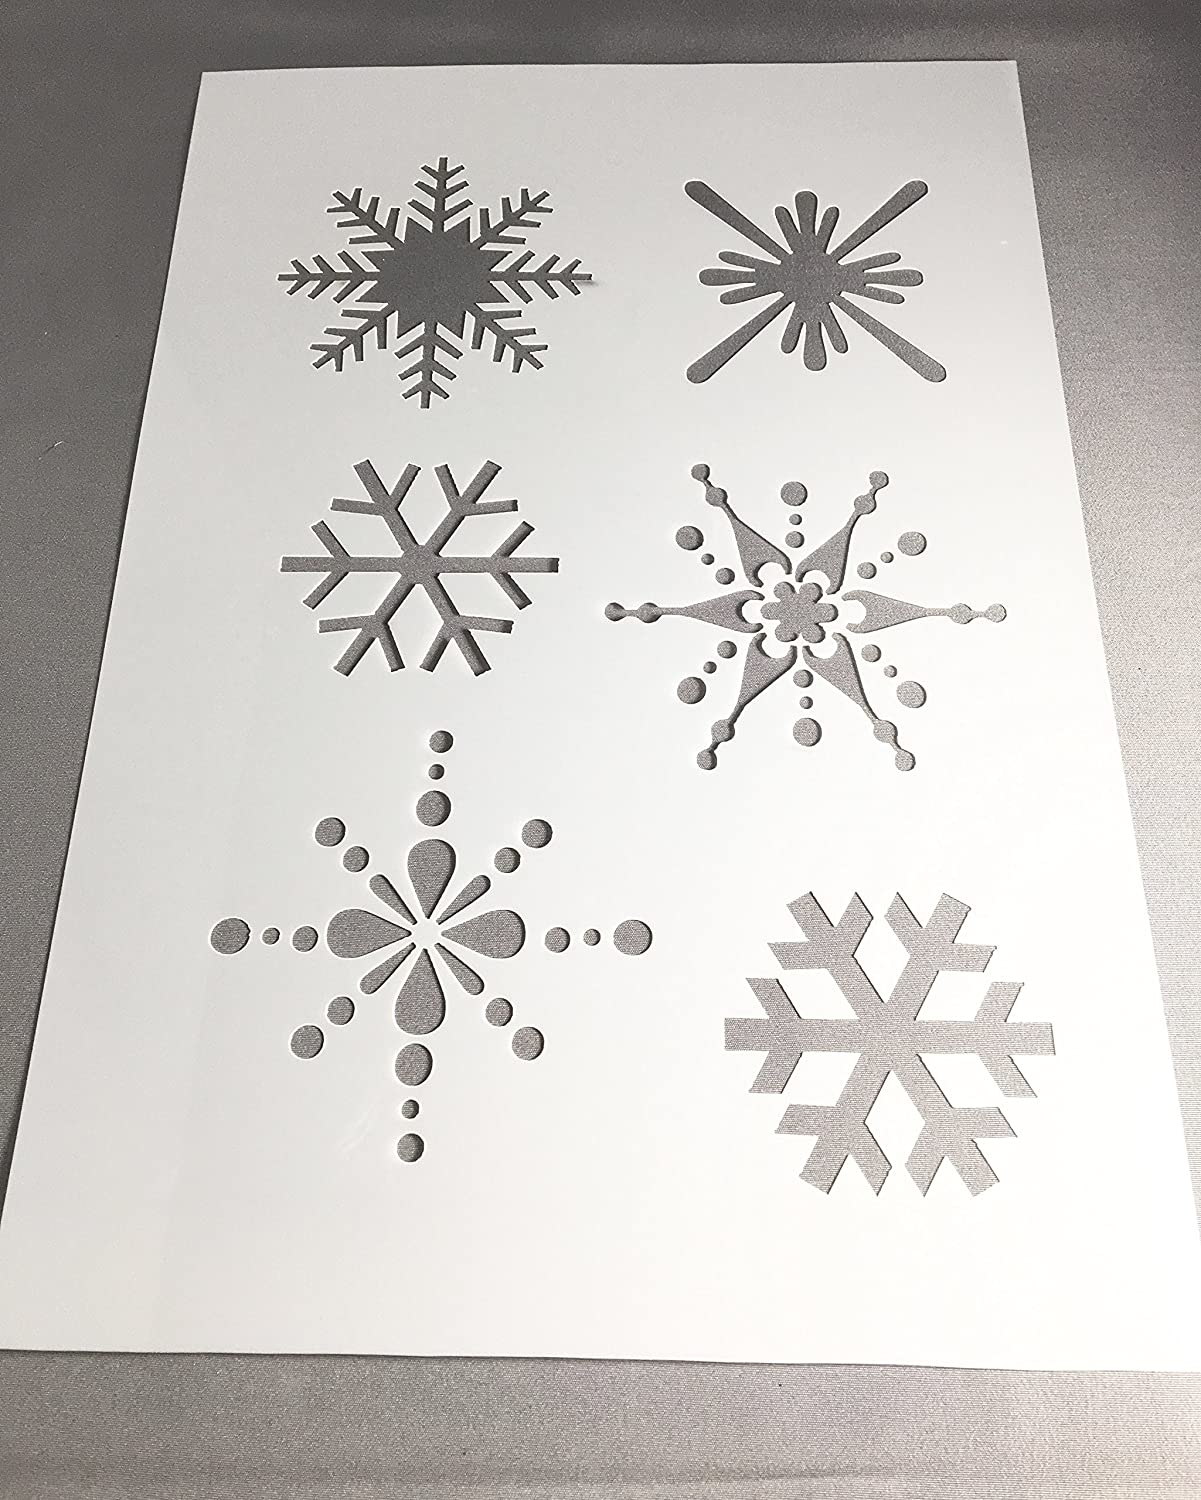 Christmas Snowflake Stencil, A4 125 or 190 film, Mylar Film Image Sizes from 60mm - 85mm Diameter